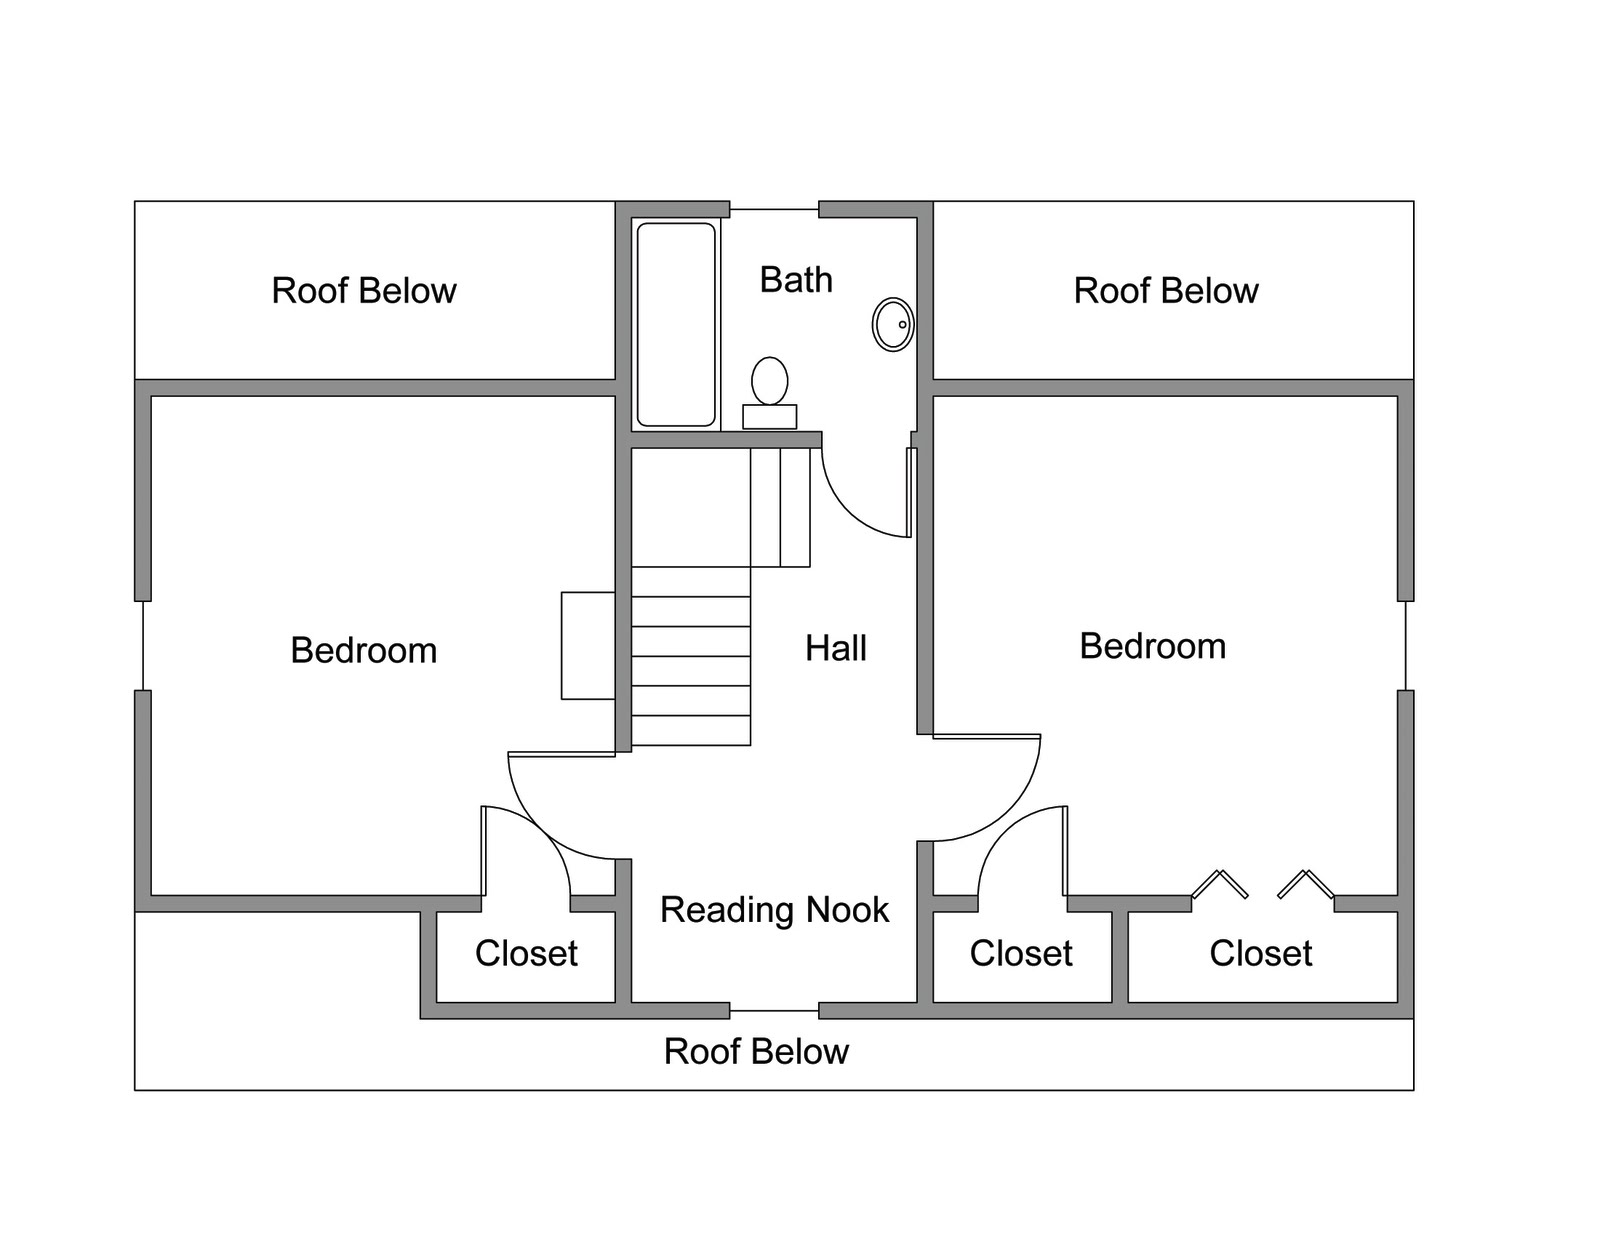 Best damn renovation ever floor plans for Best floor plan ever